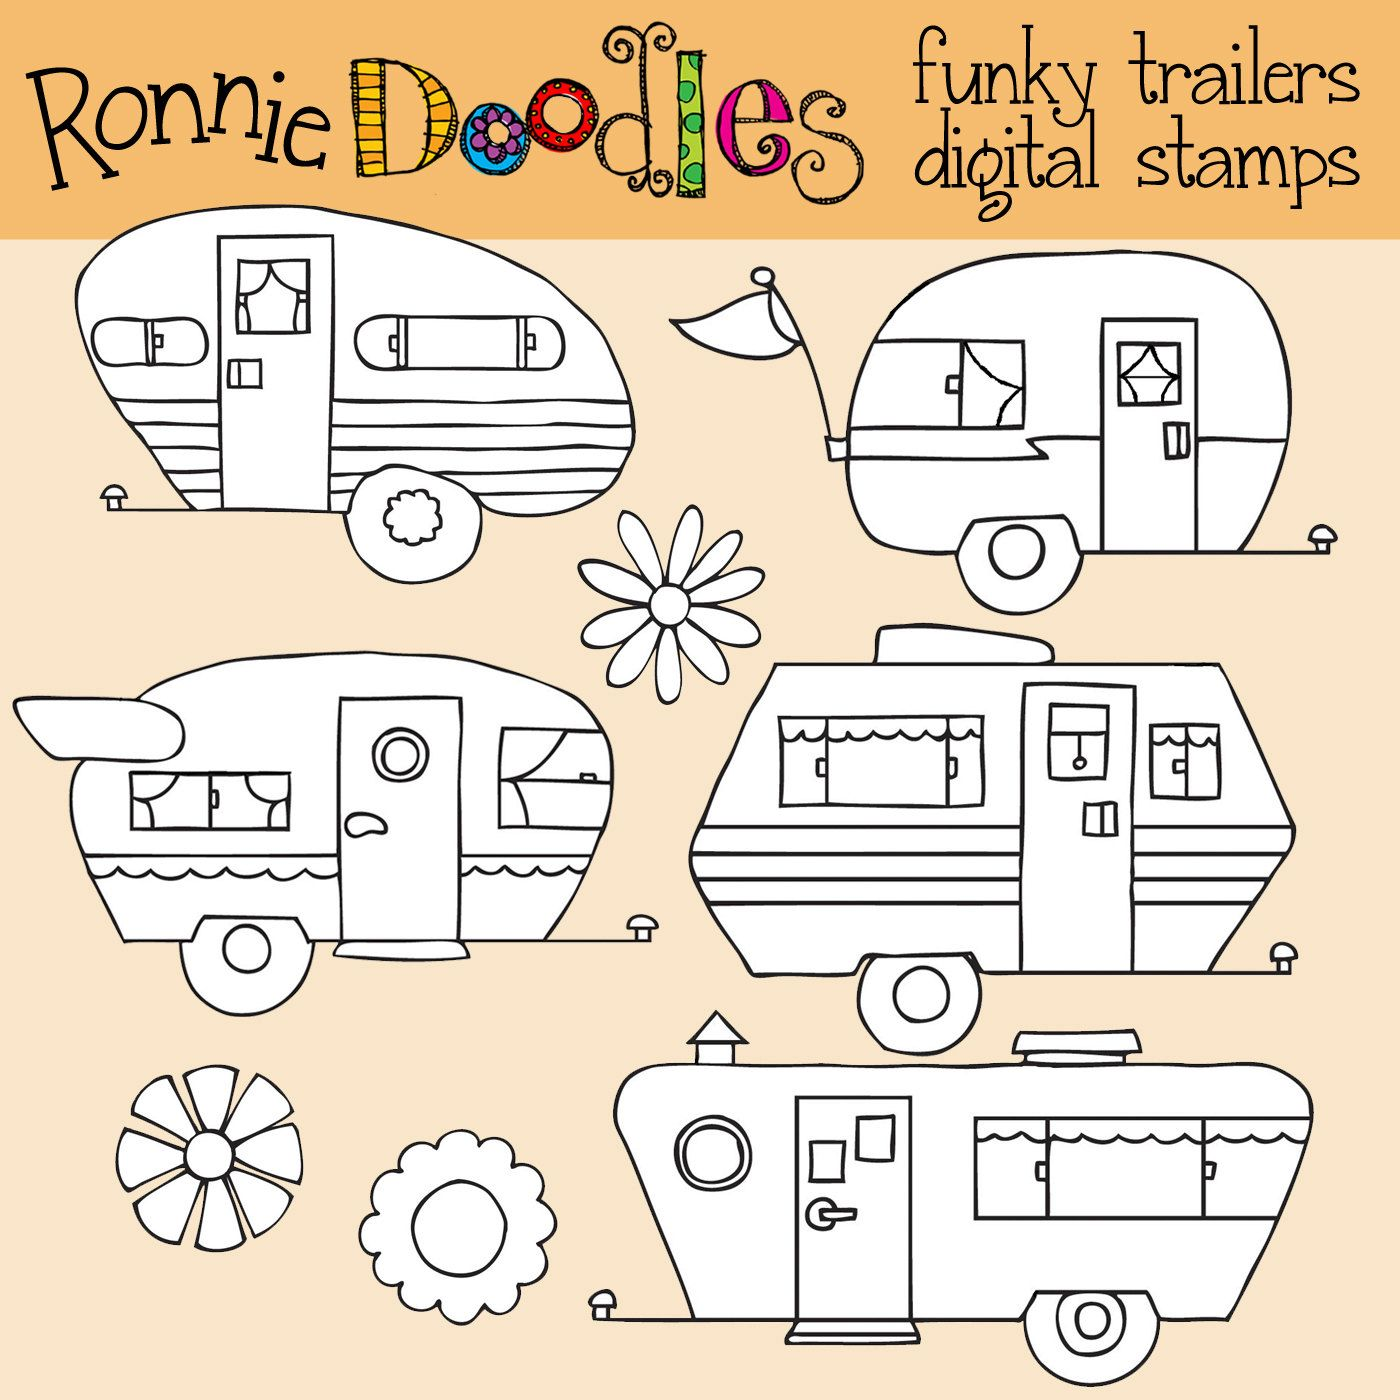 Ronnies Funky Trailers Digital Stamps